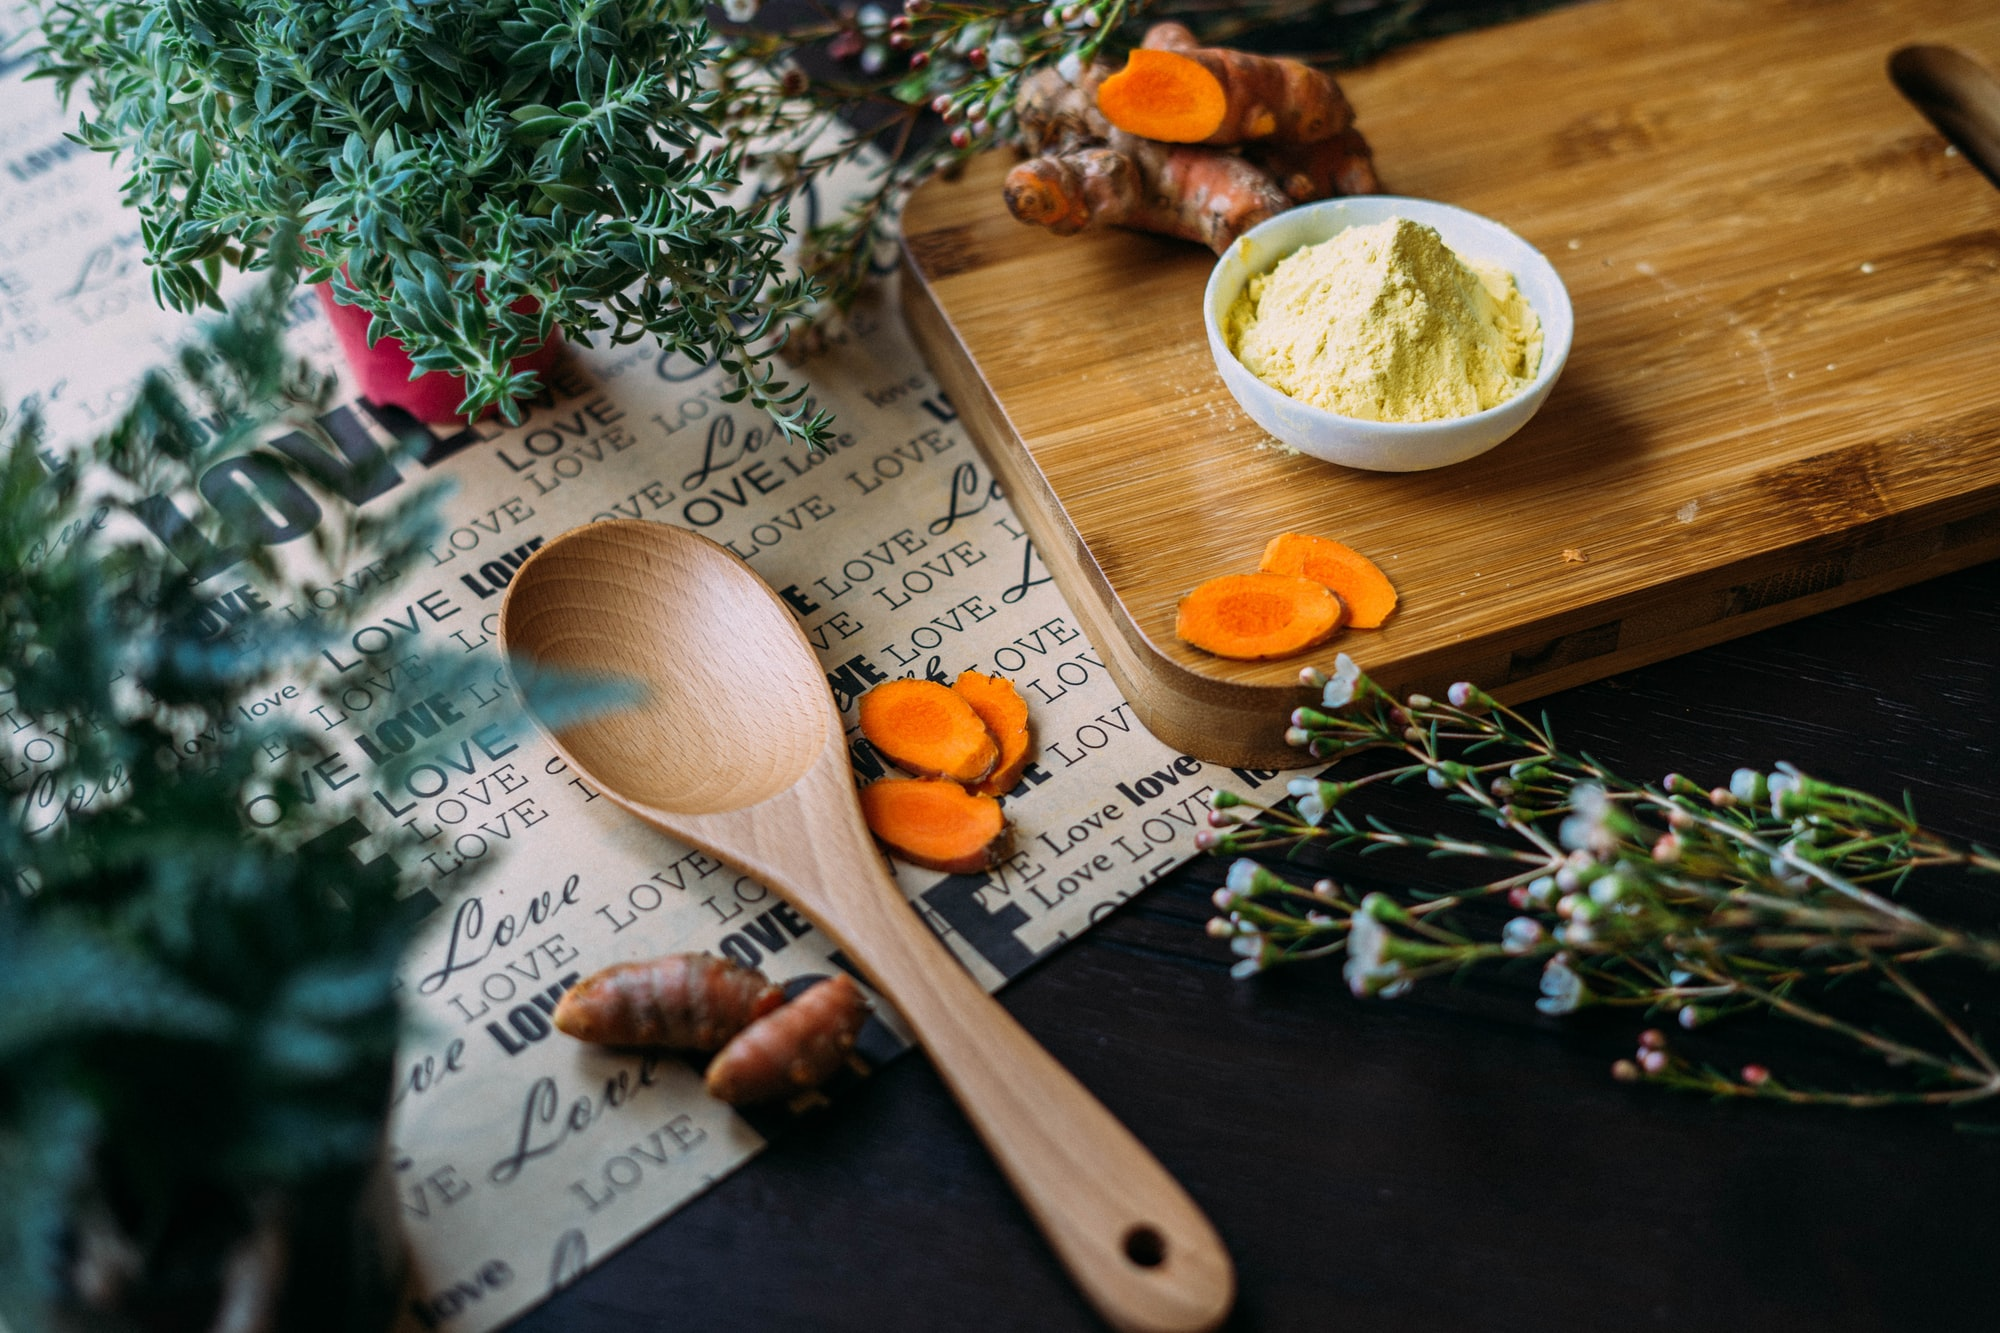 Herbs for detox body cleansing